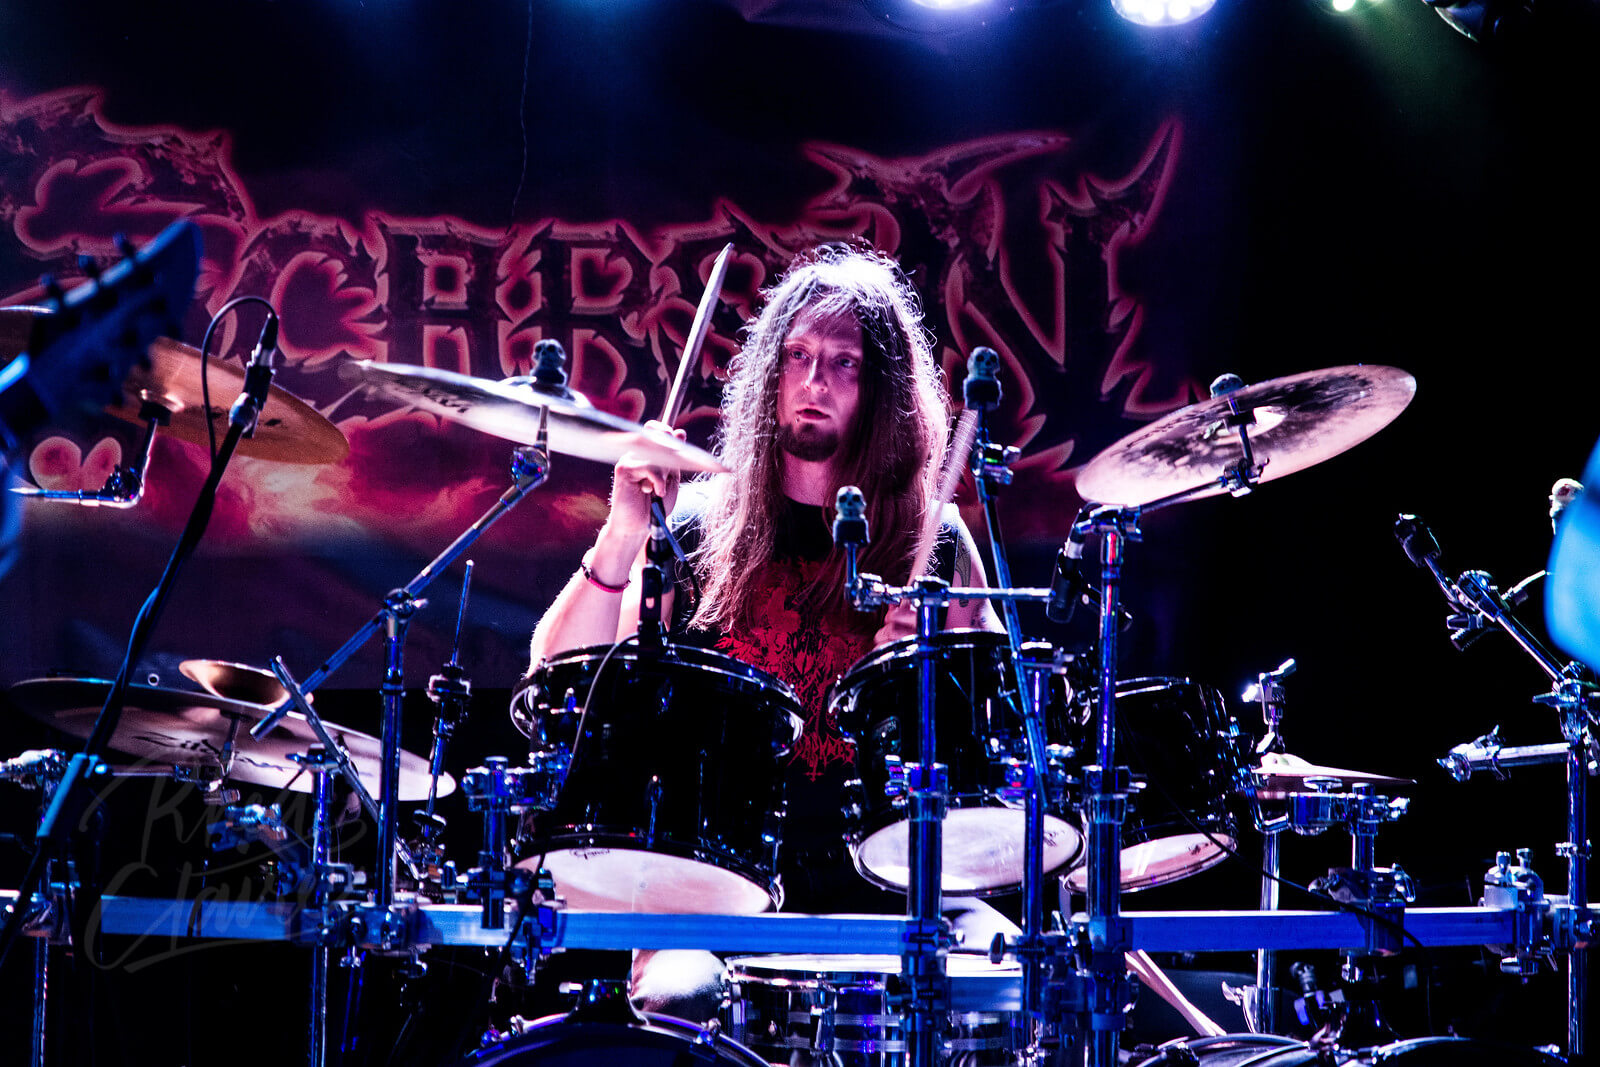 Drummer Jason Caruana poses with Scorpion Percussion drumsticks behind his drumkit